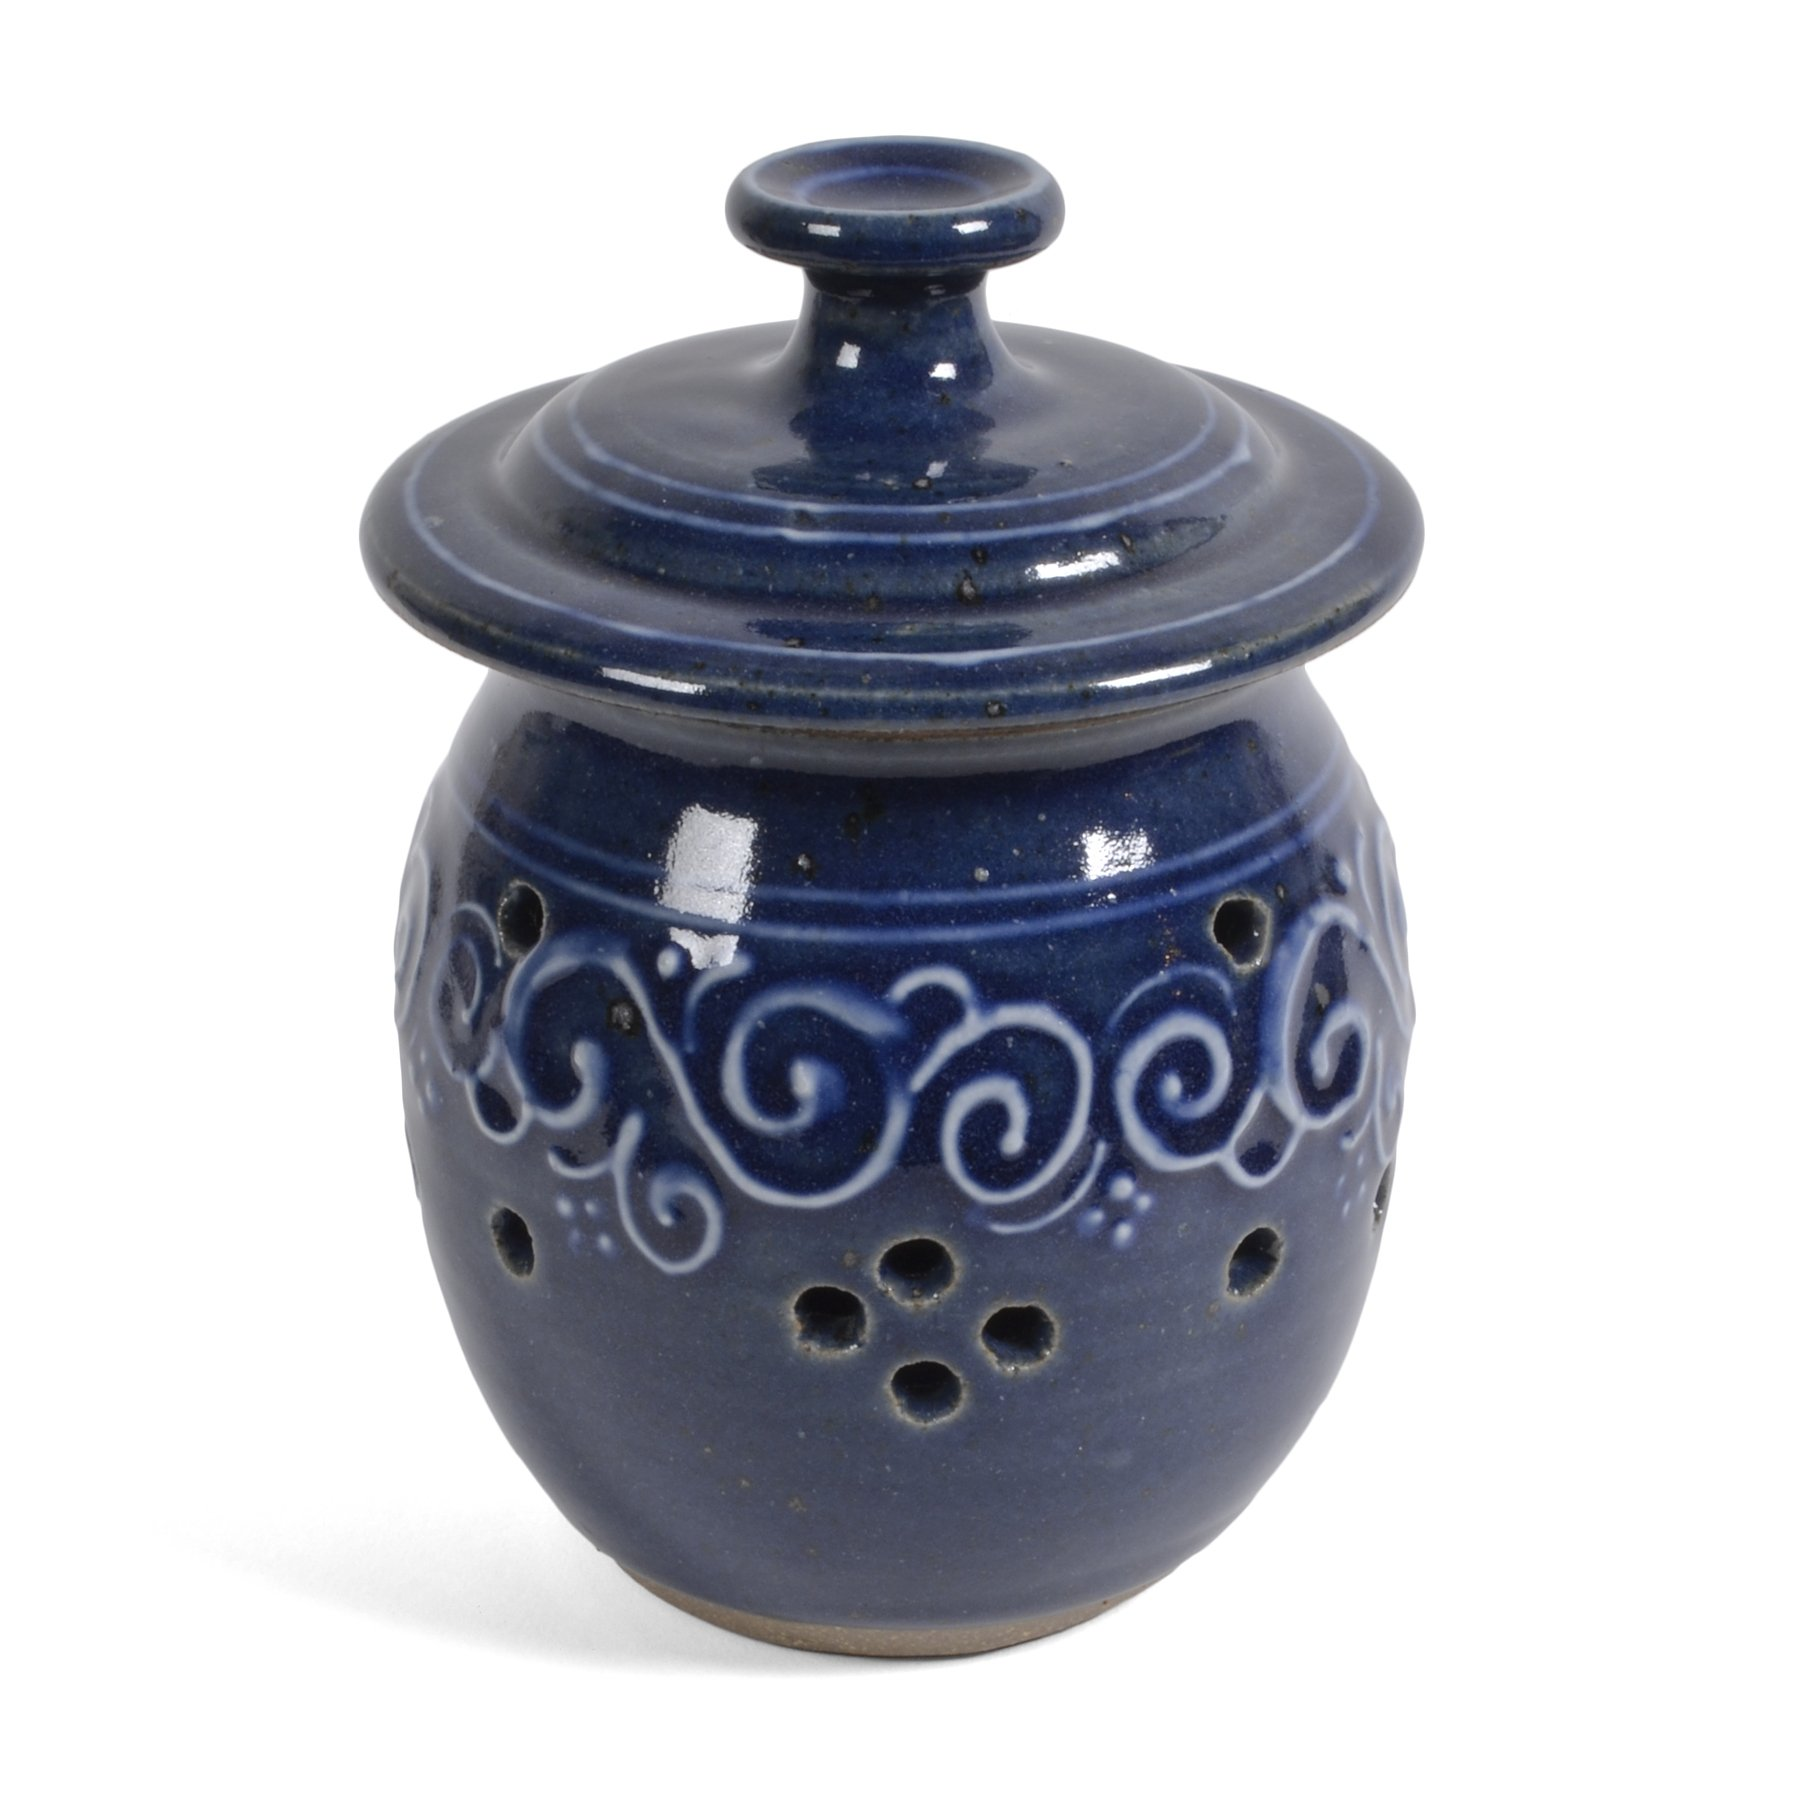 The Potters, LTD Garlic Lover's Large Garlic Keeper, True Blue by The Potters, LTD